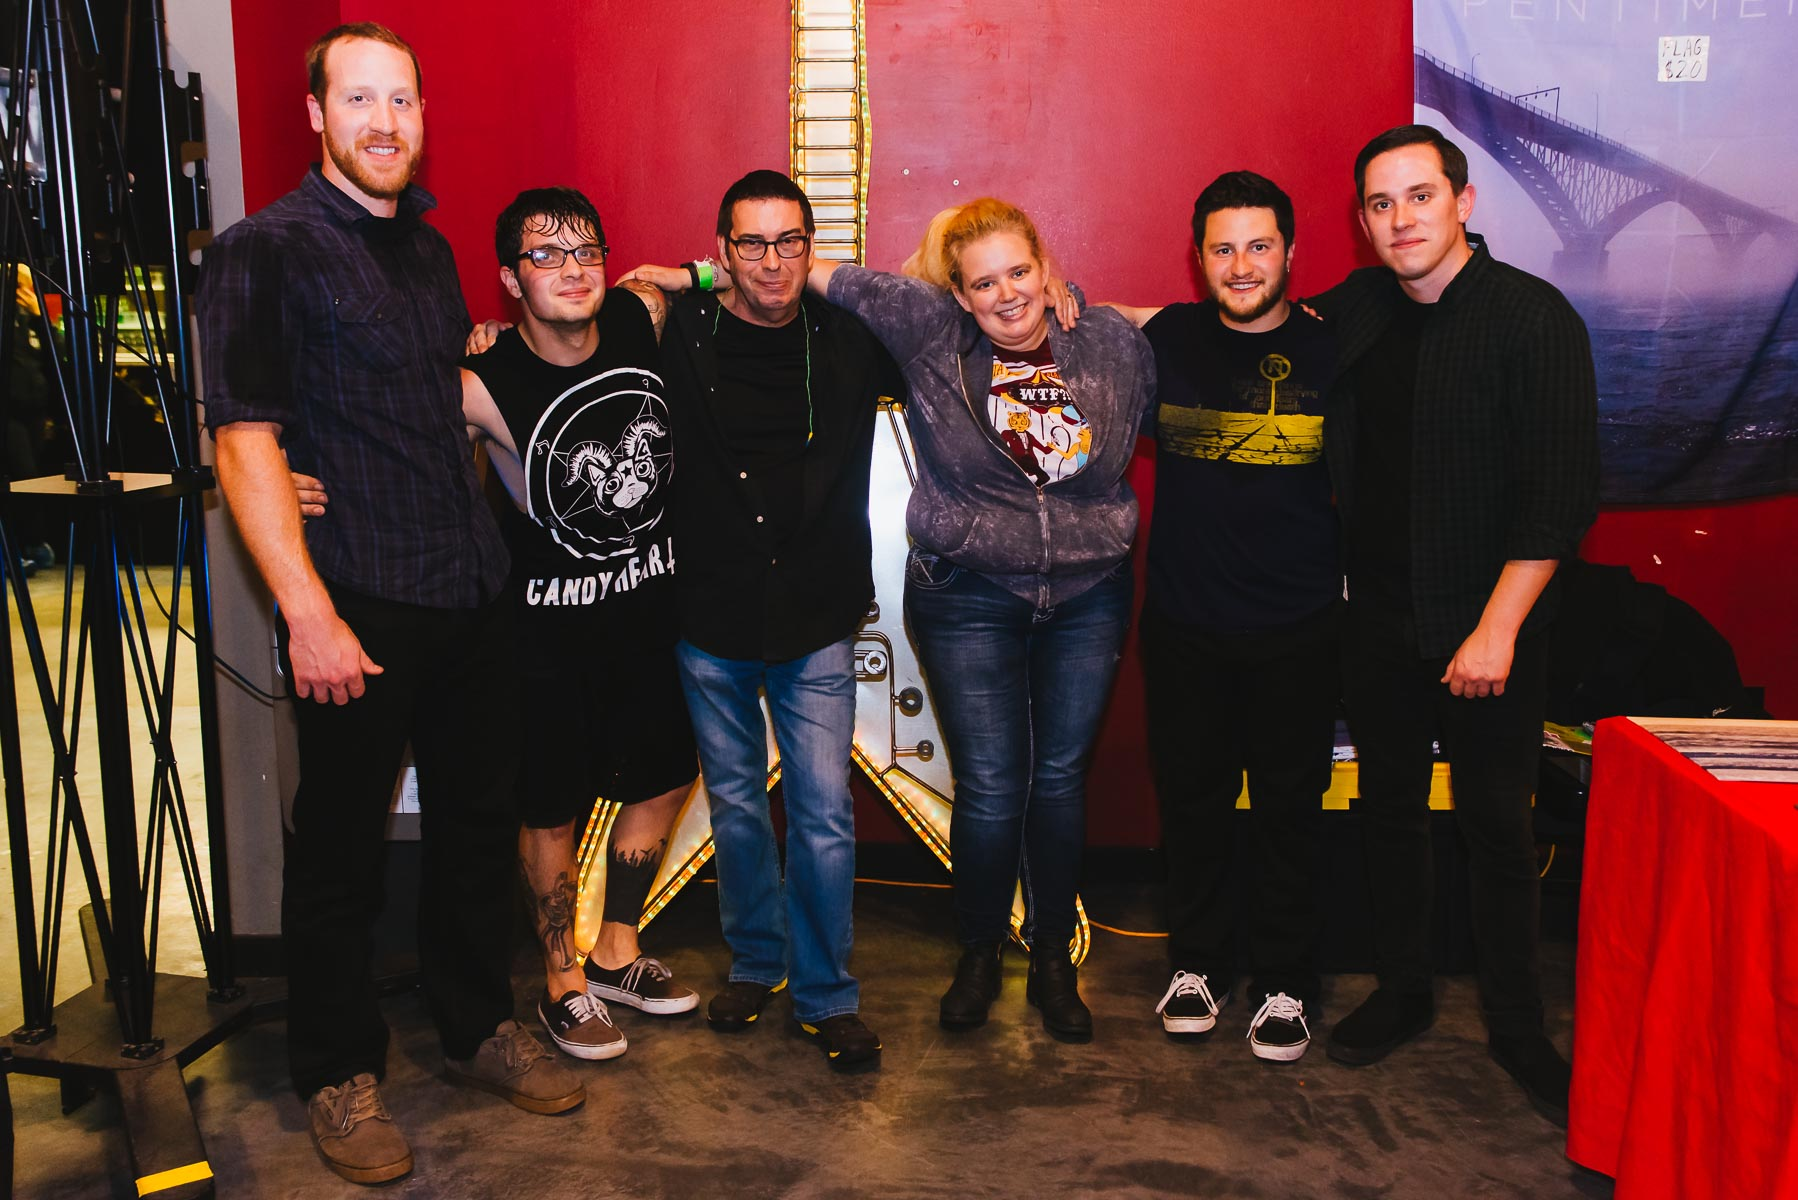 Lance, Mike, my dad, me, Vinny, and Jeramiah of Pentimento / 11/1/15 / GameChanger World / Howell, NJ